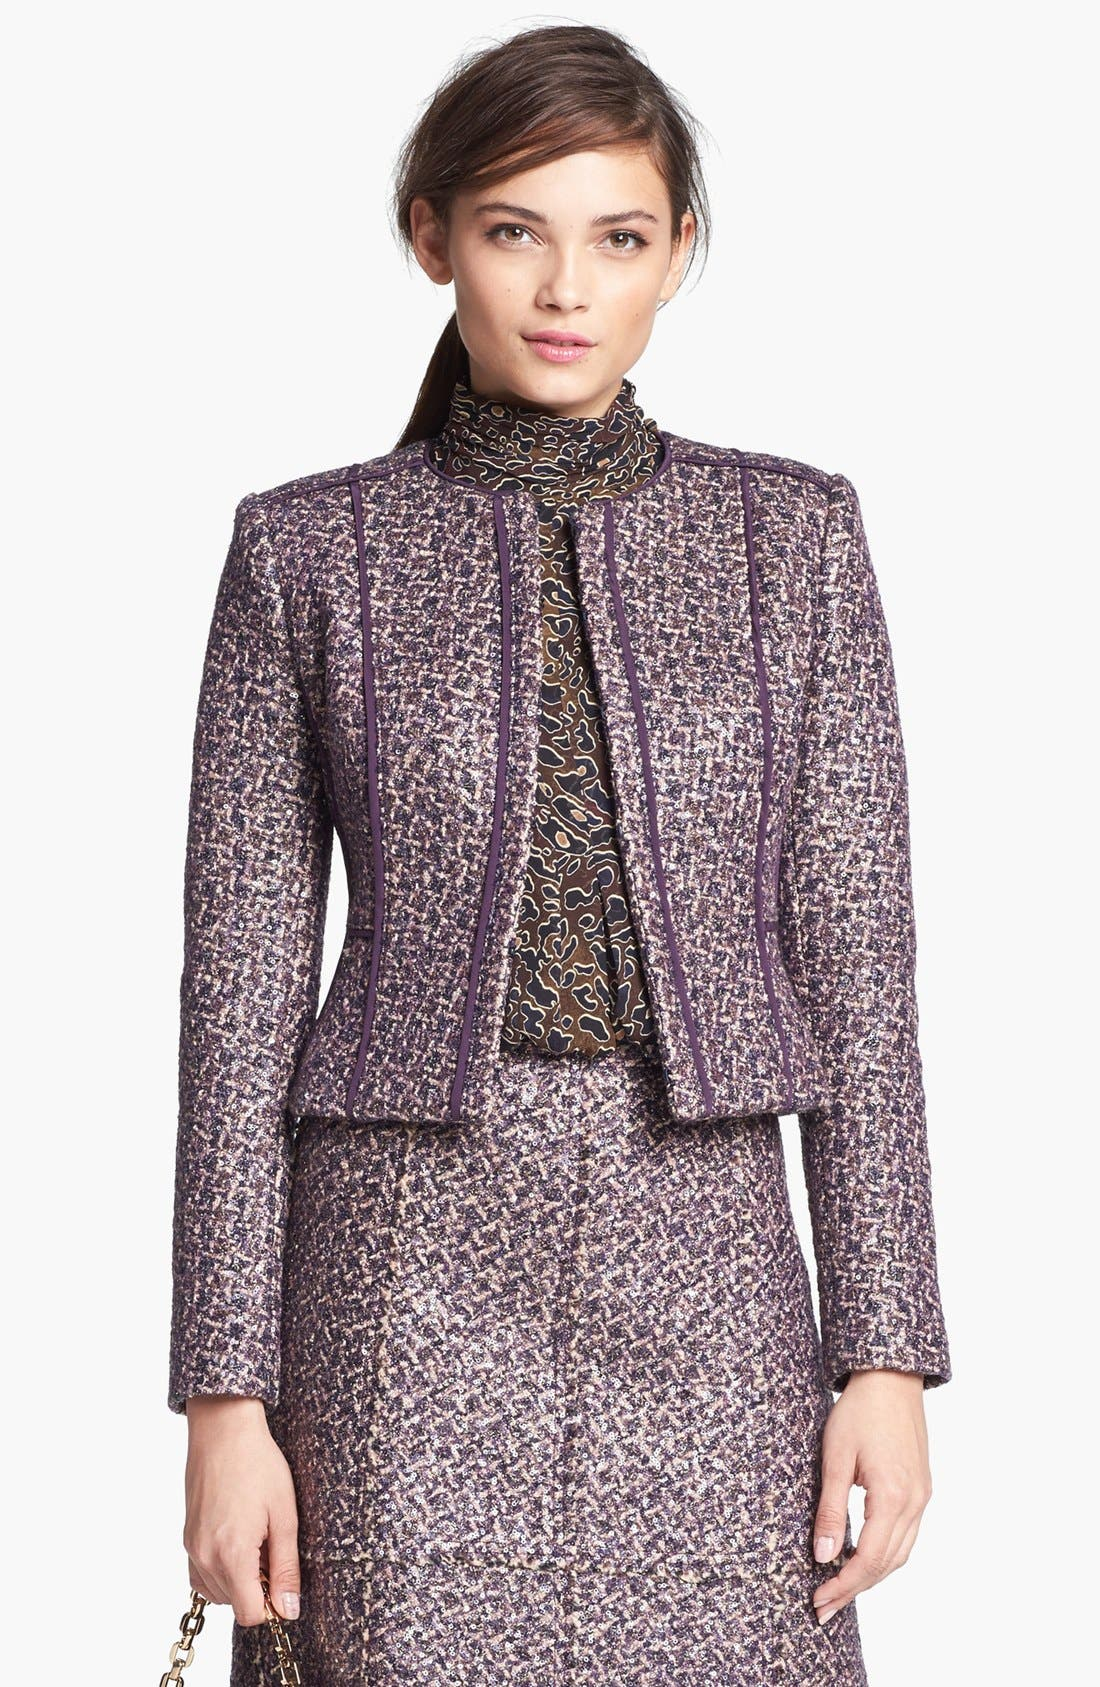 Alternate Image 1 Selected - Tory Burch 'Kennedy' Jacket